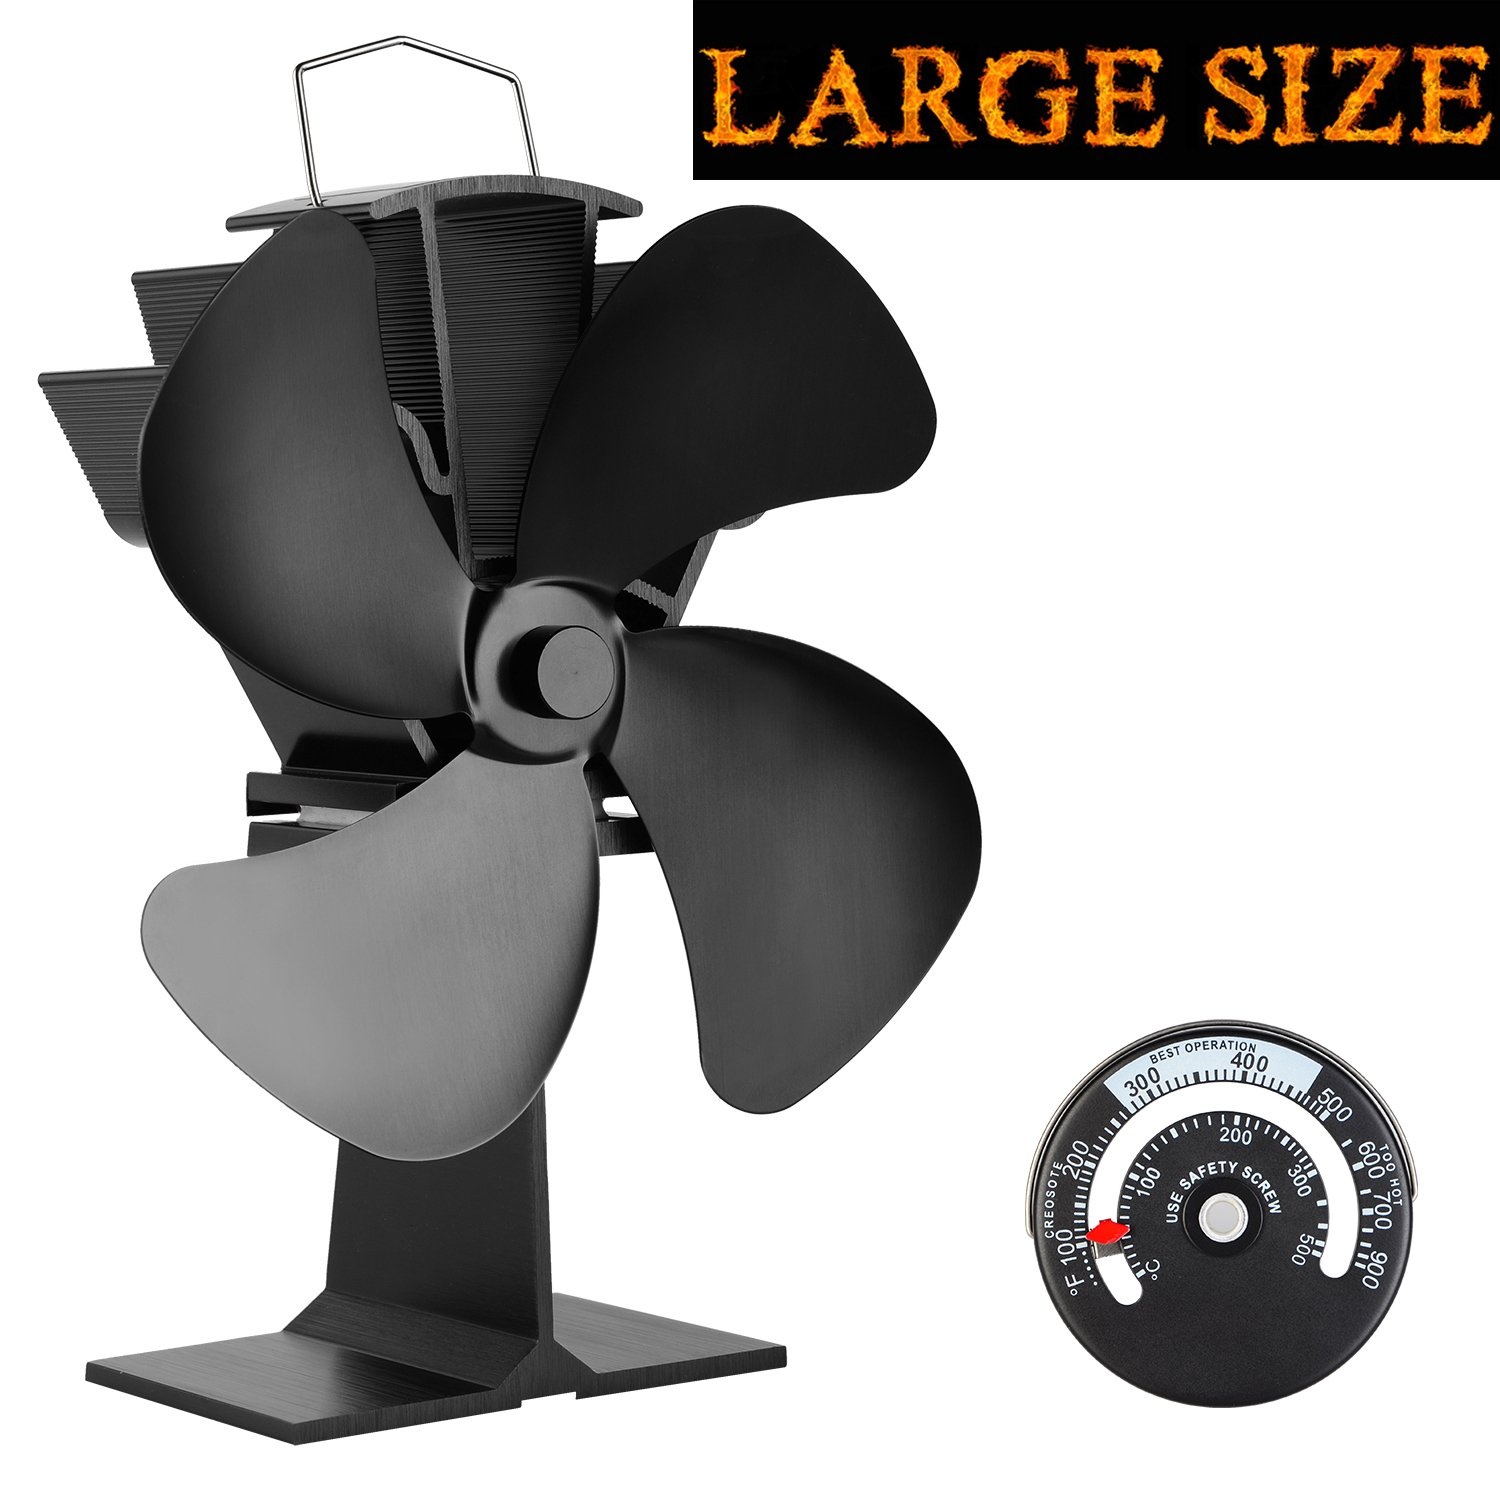 Range parts accessories amazon kinden fireplace fans 4 blade heat powered stove fan for wood log burner ultra fandeluxe Choice Image